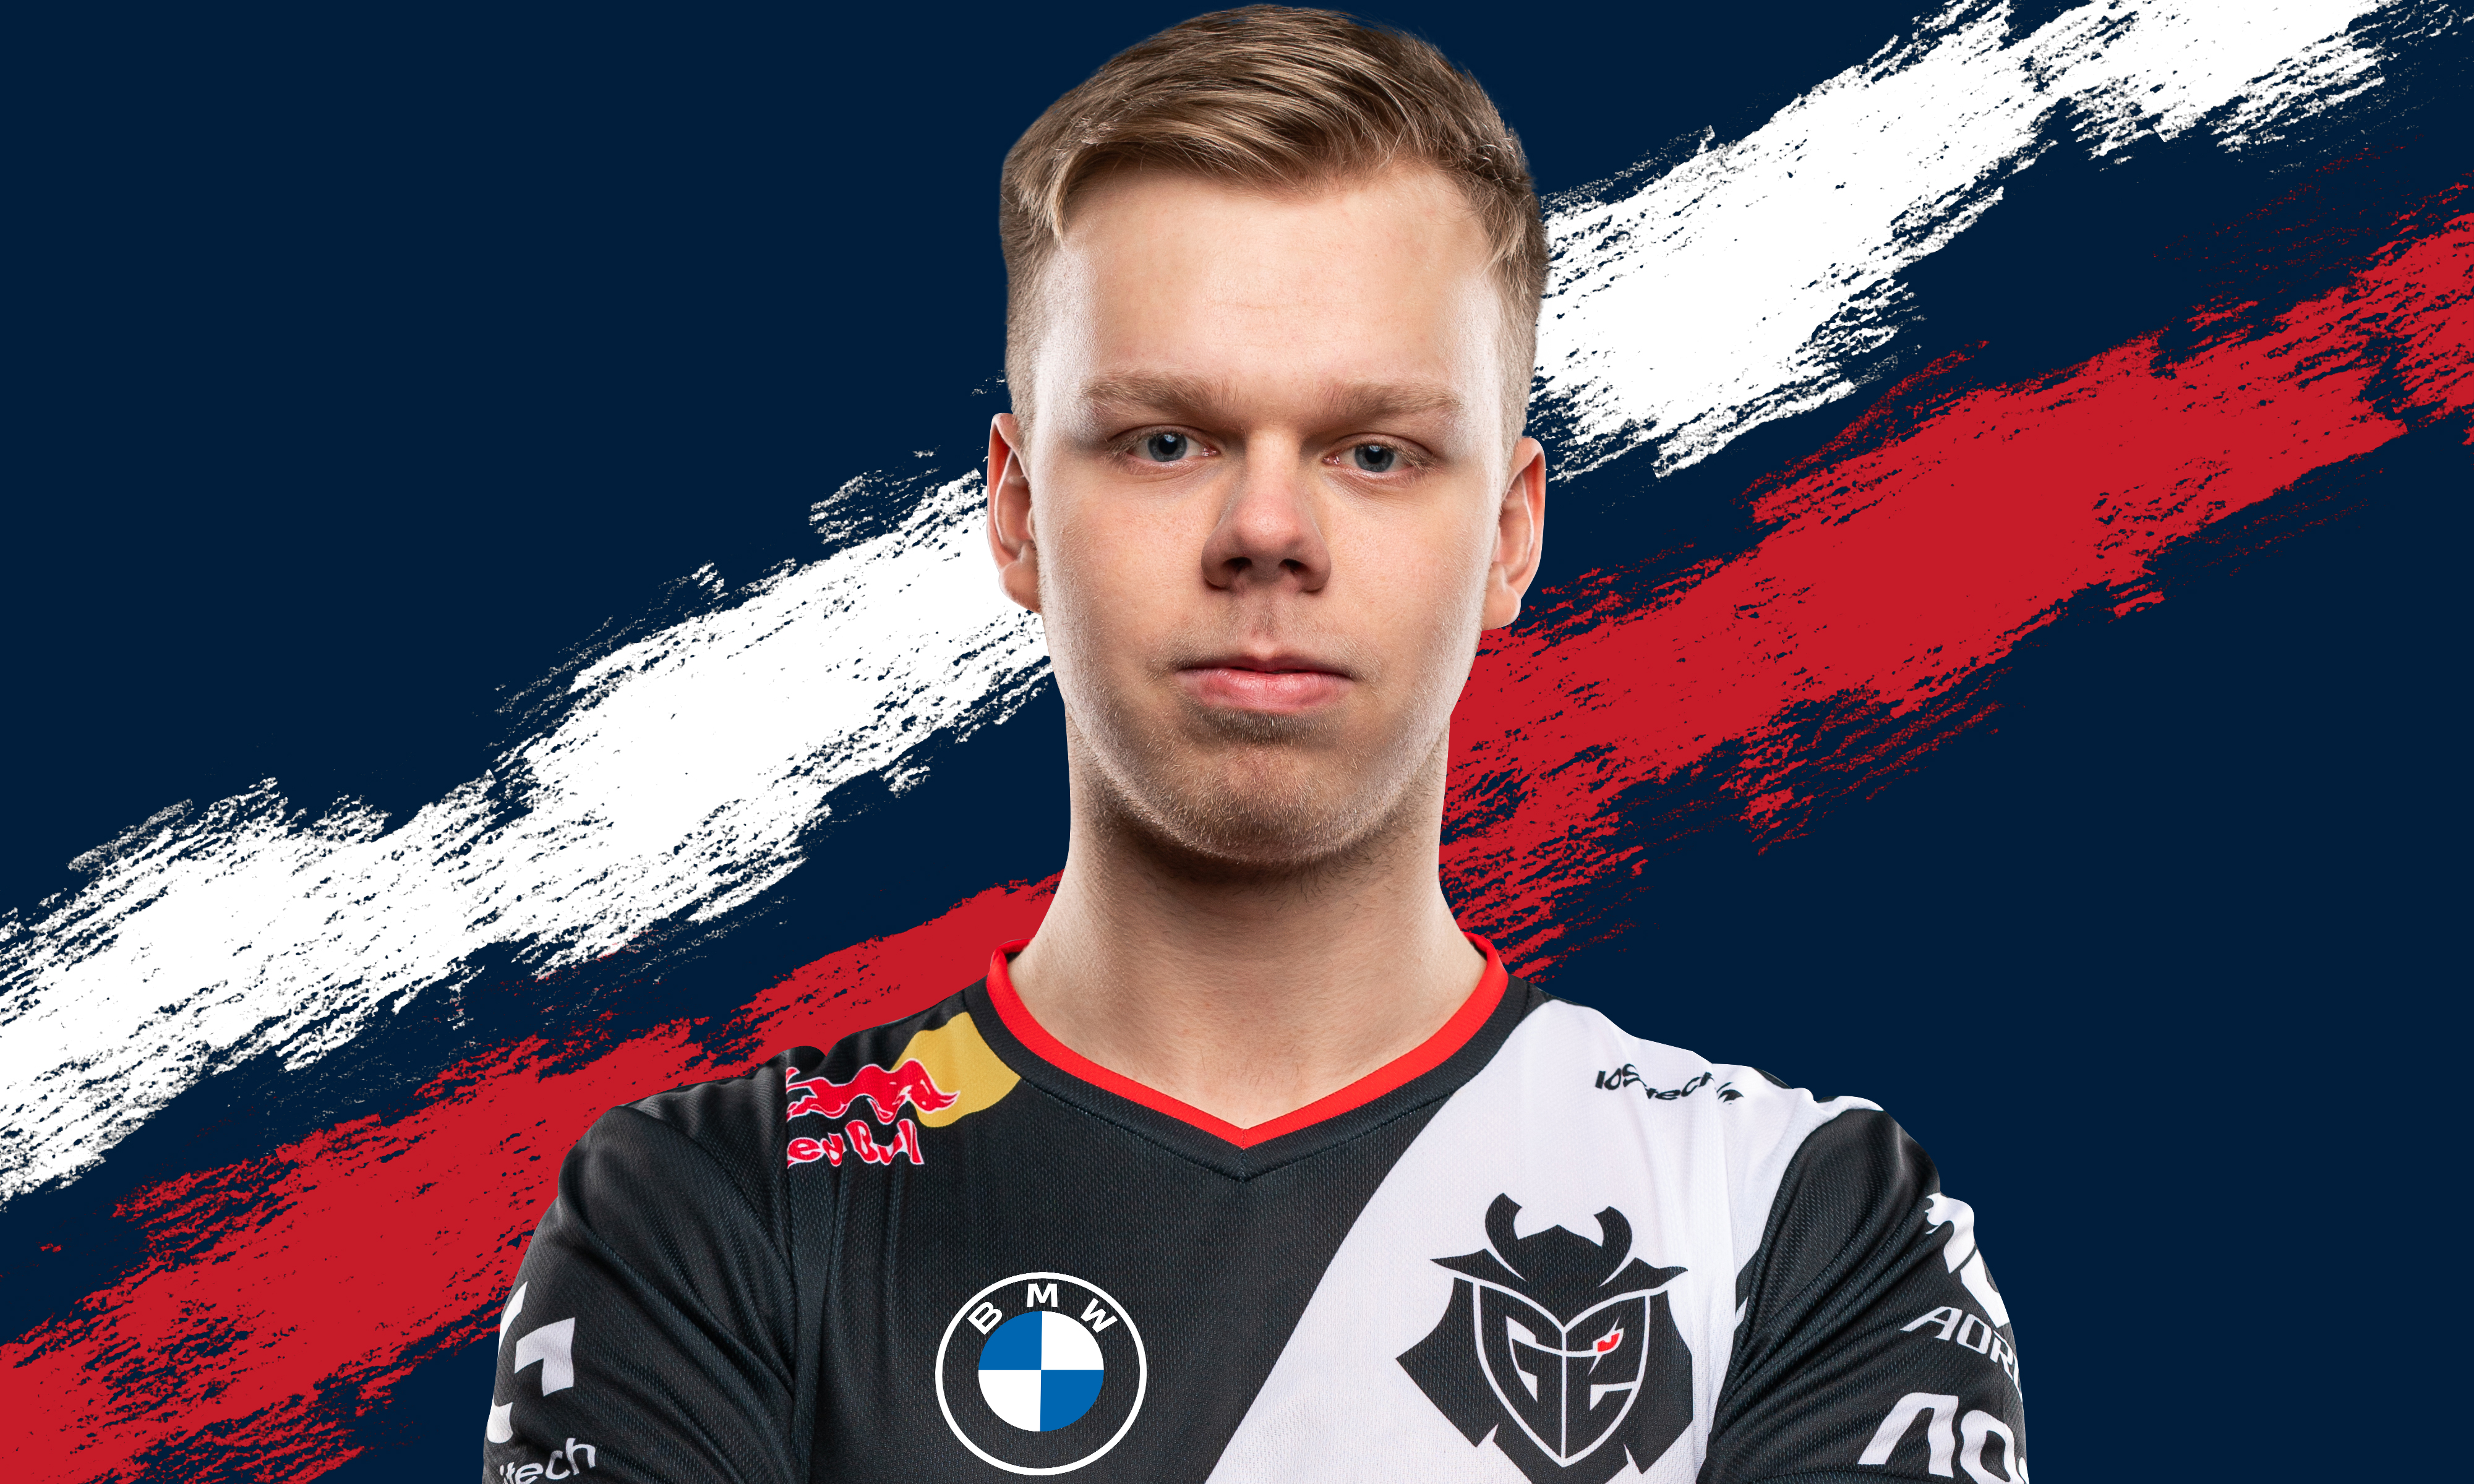 A headshot of G2 Esports League of Legends player Wunder